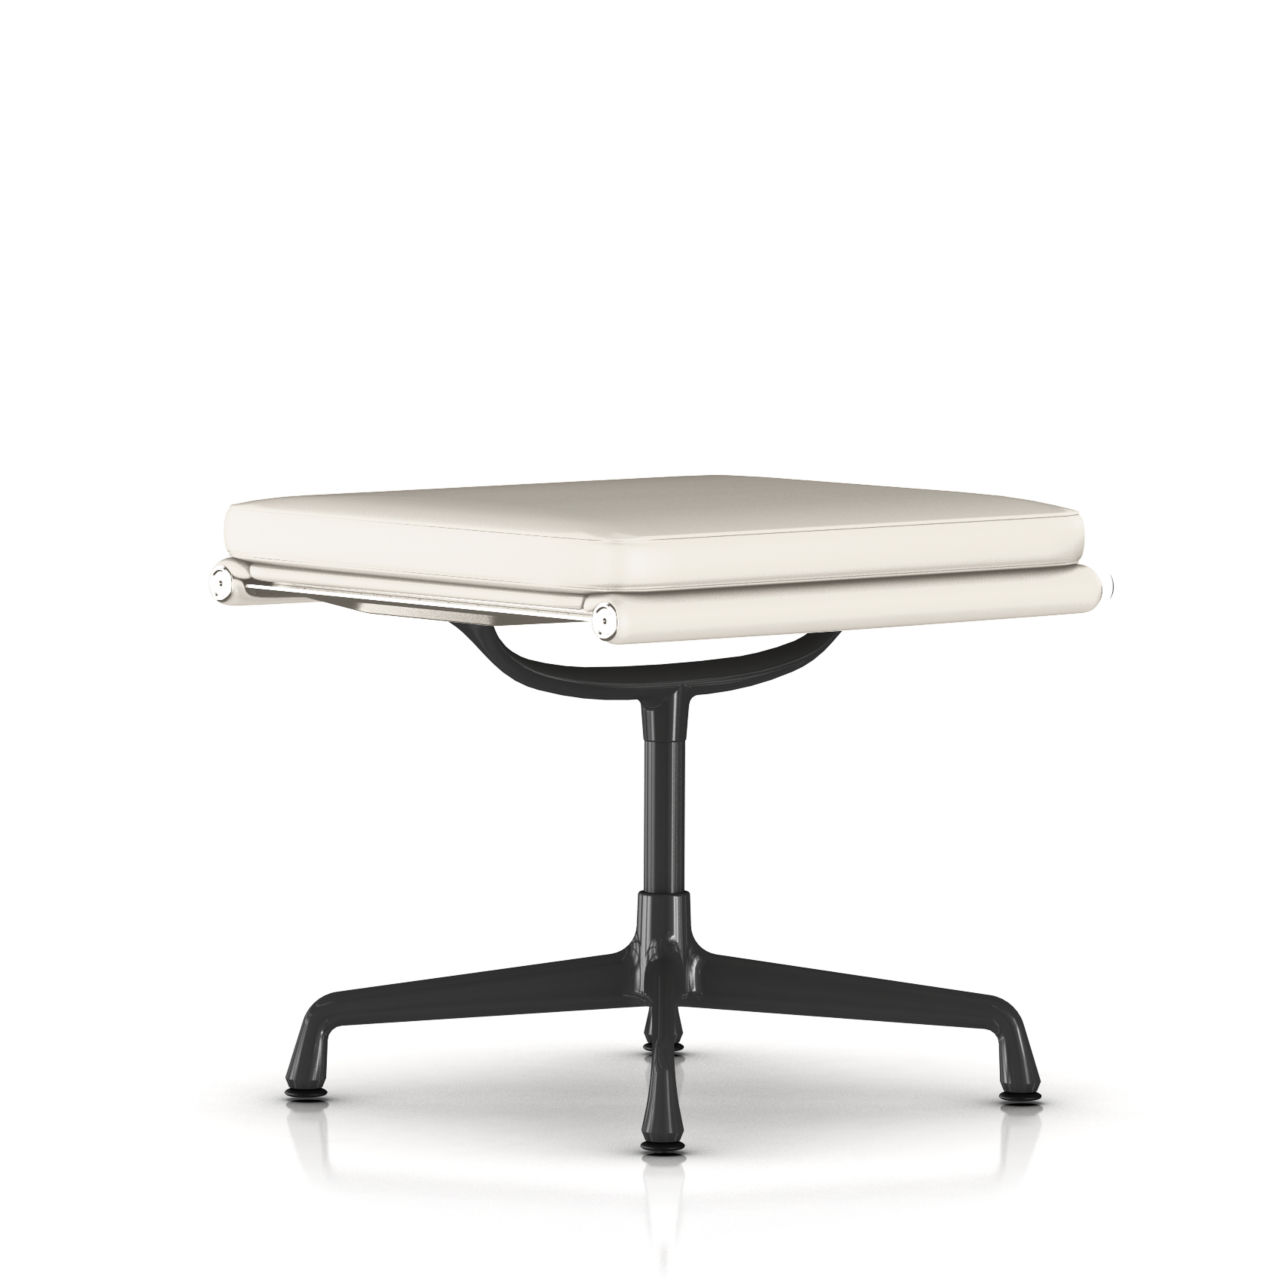 Eames Soft Pad Ottoman in Alpine Leather by Herman Miller